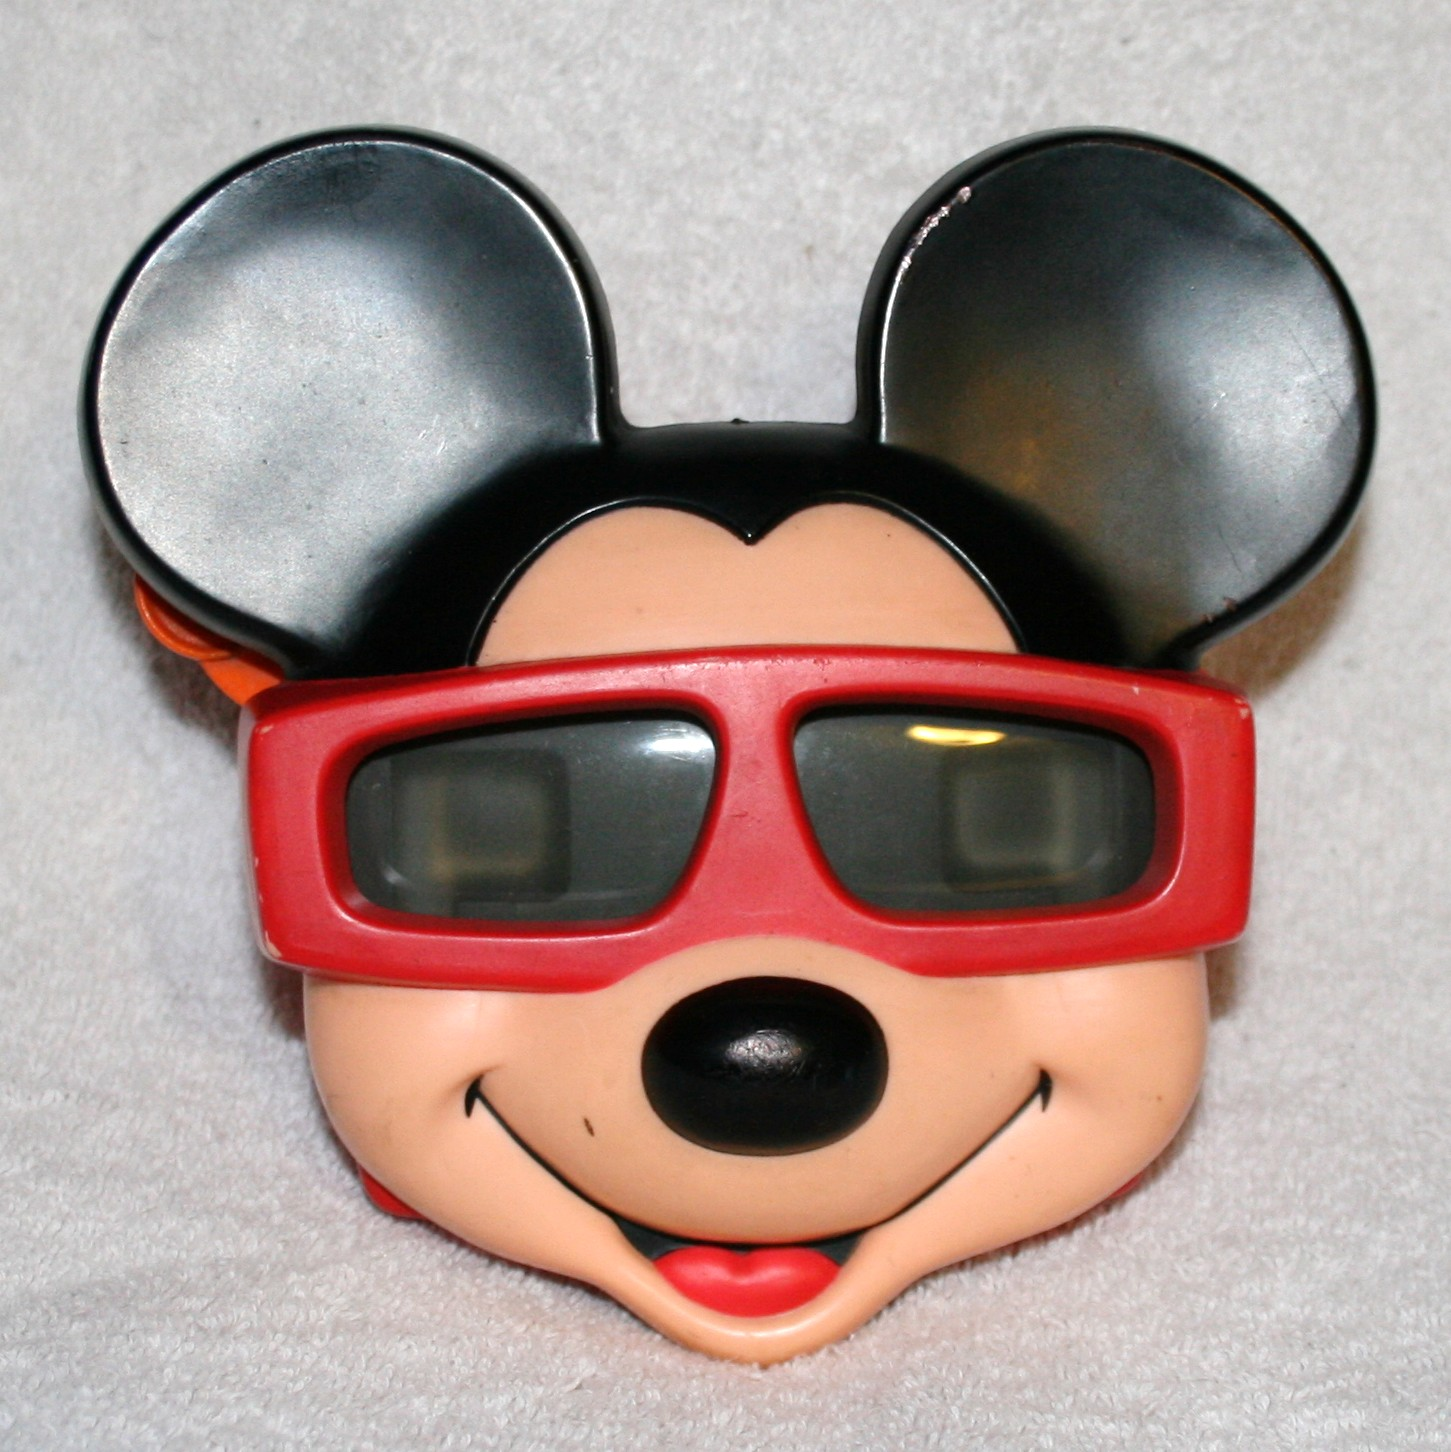 On veux le retour des VIEW MASTER sur les parcs disney  View-master disneyland Toy+Viewmaster+1